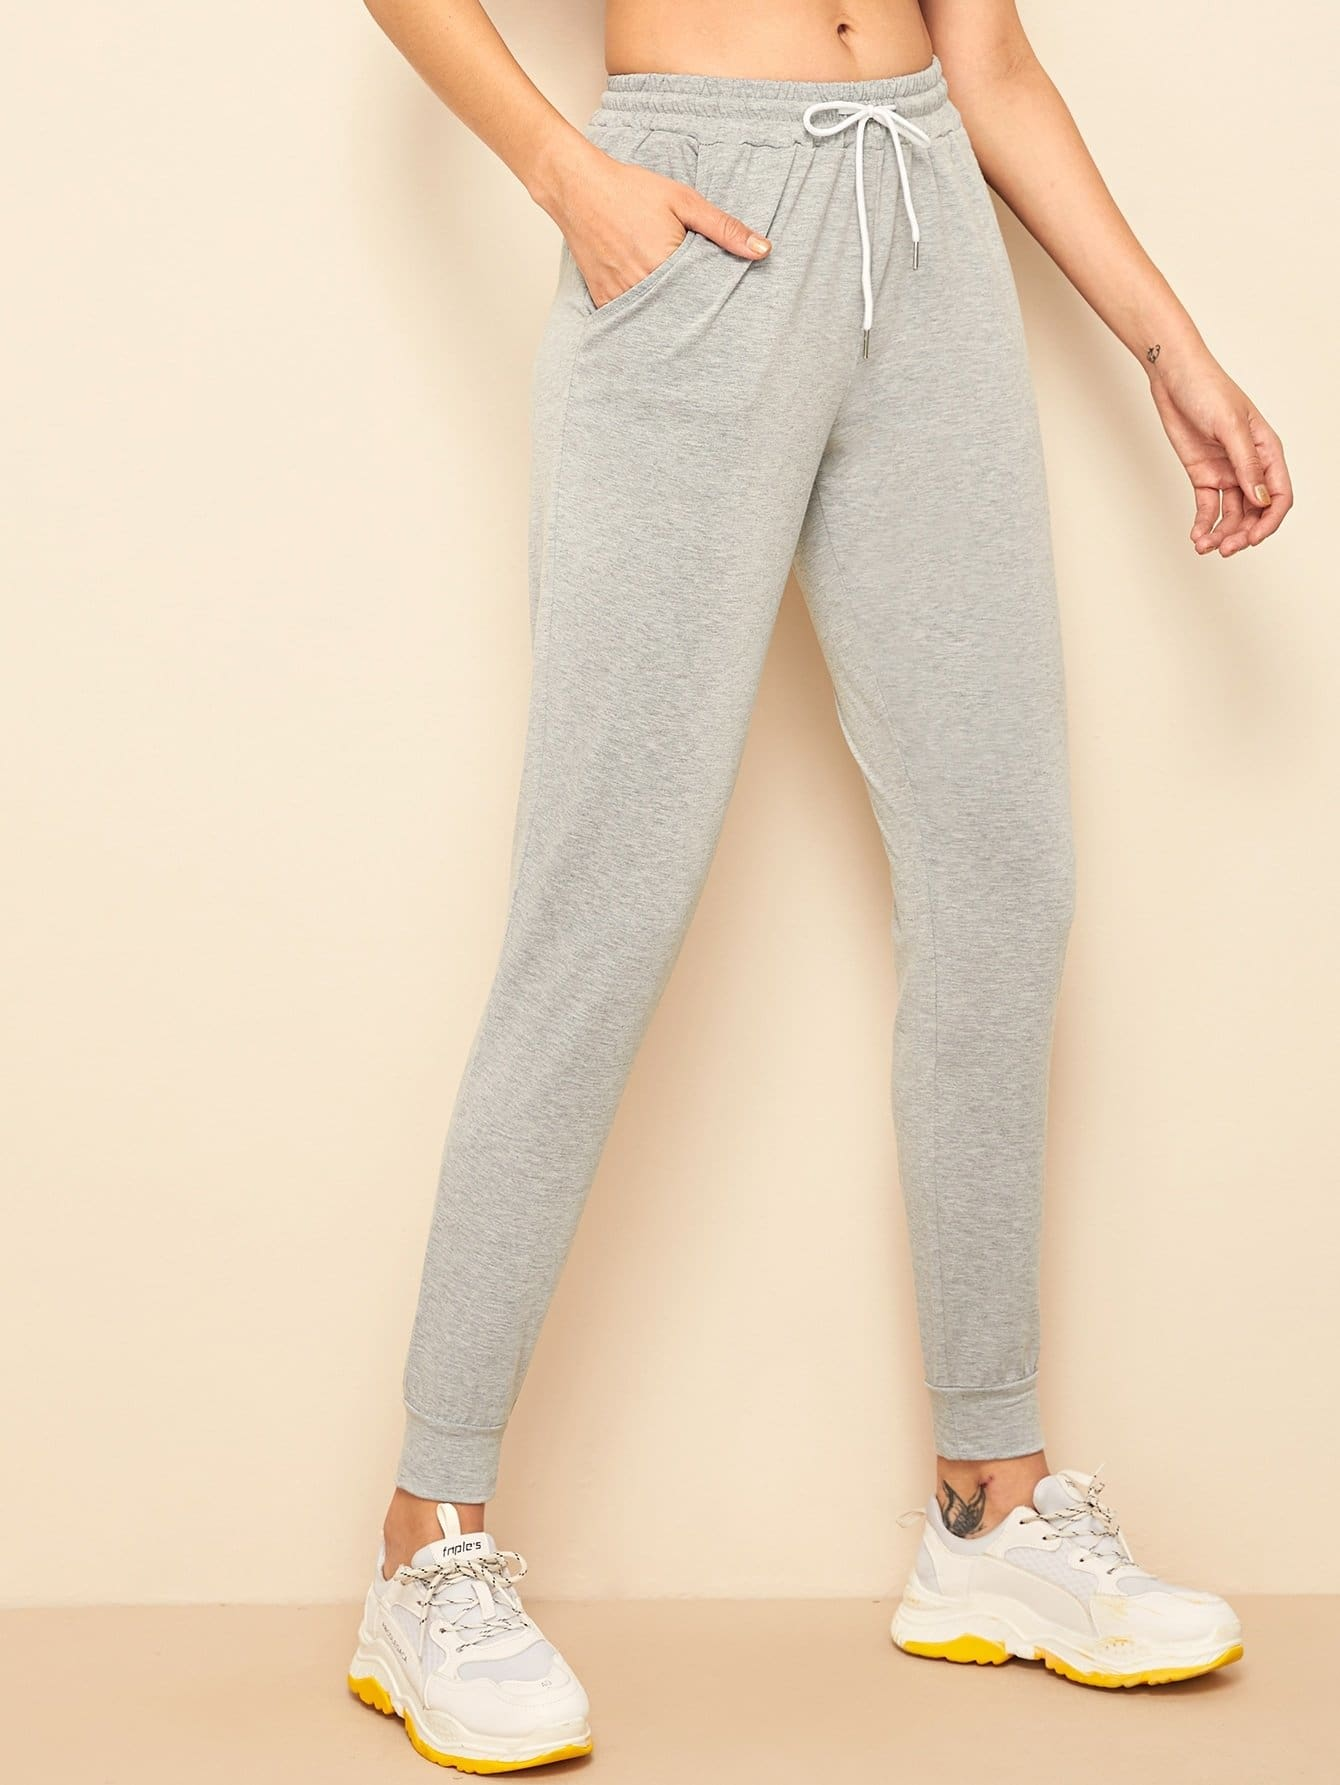 Heather Grey Pocket Side Sweatpants - S - Fittness Leggings